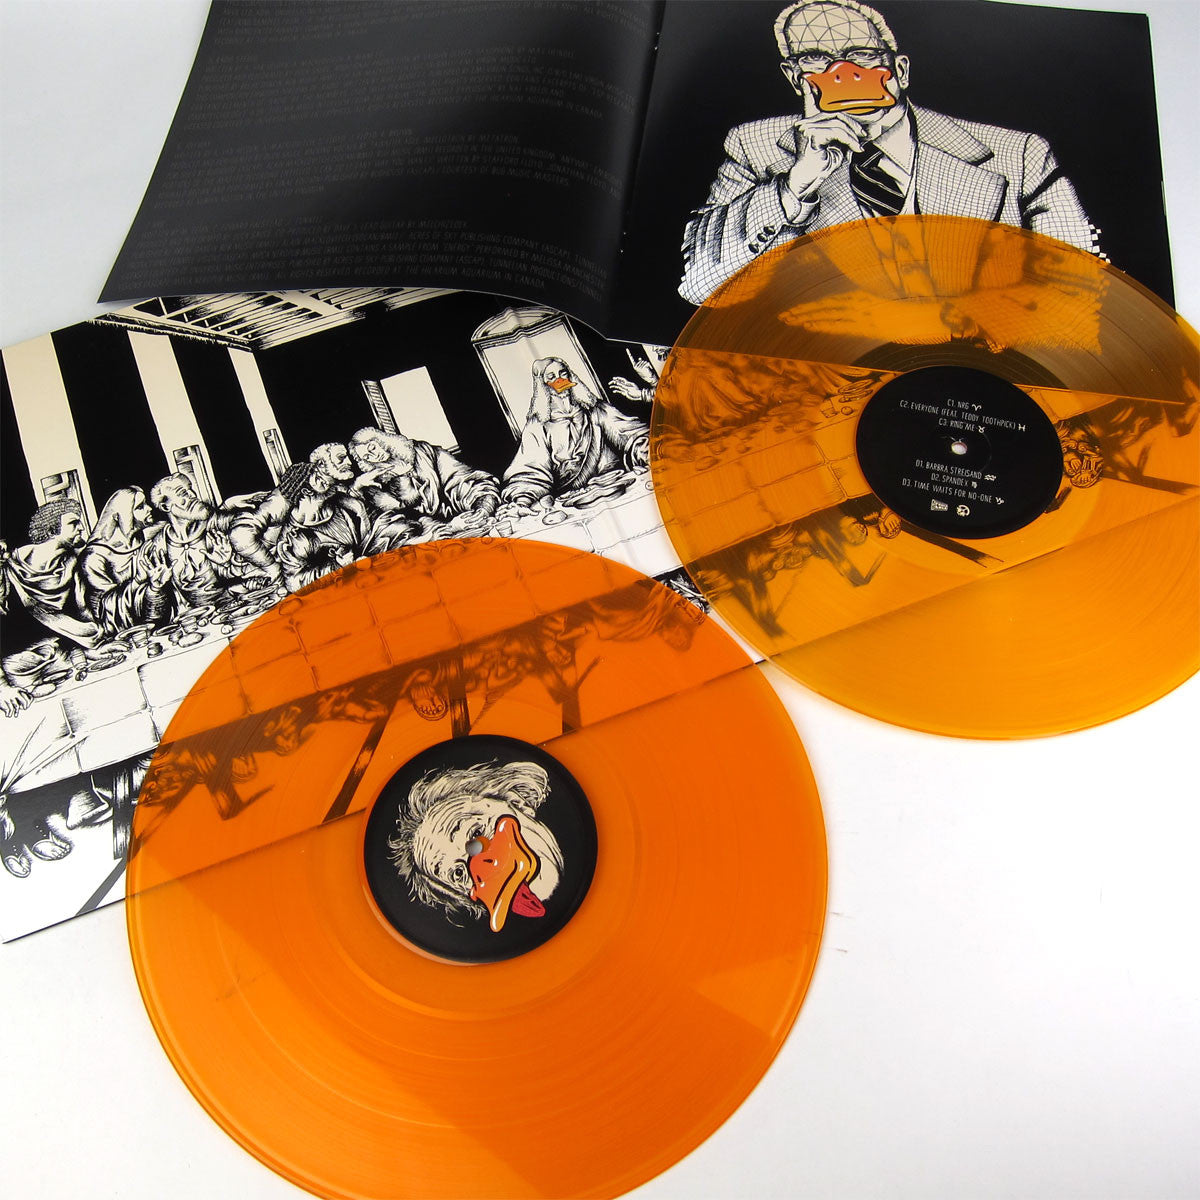 Duck Sauce: Quack (A-Trak, 180g, Free MP3, Colored Vinyl) Vinyl 2LP detail